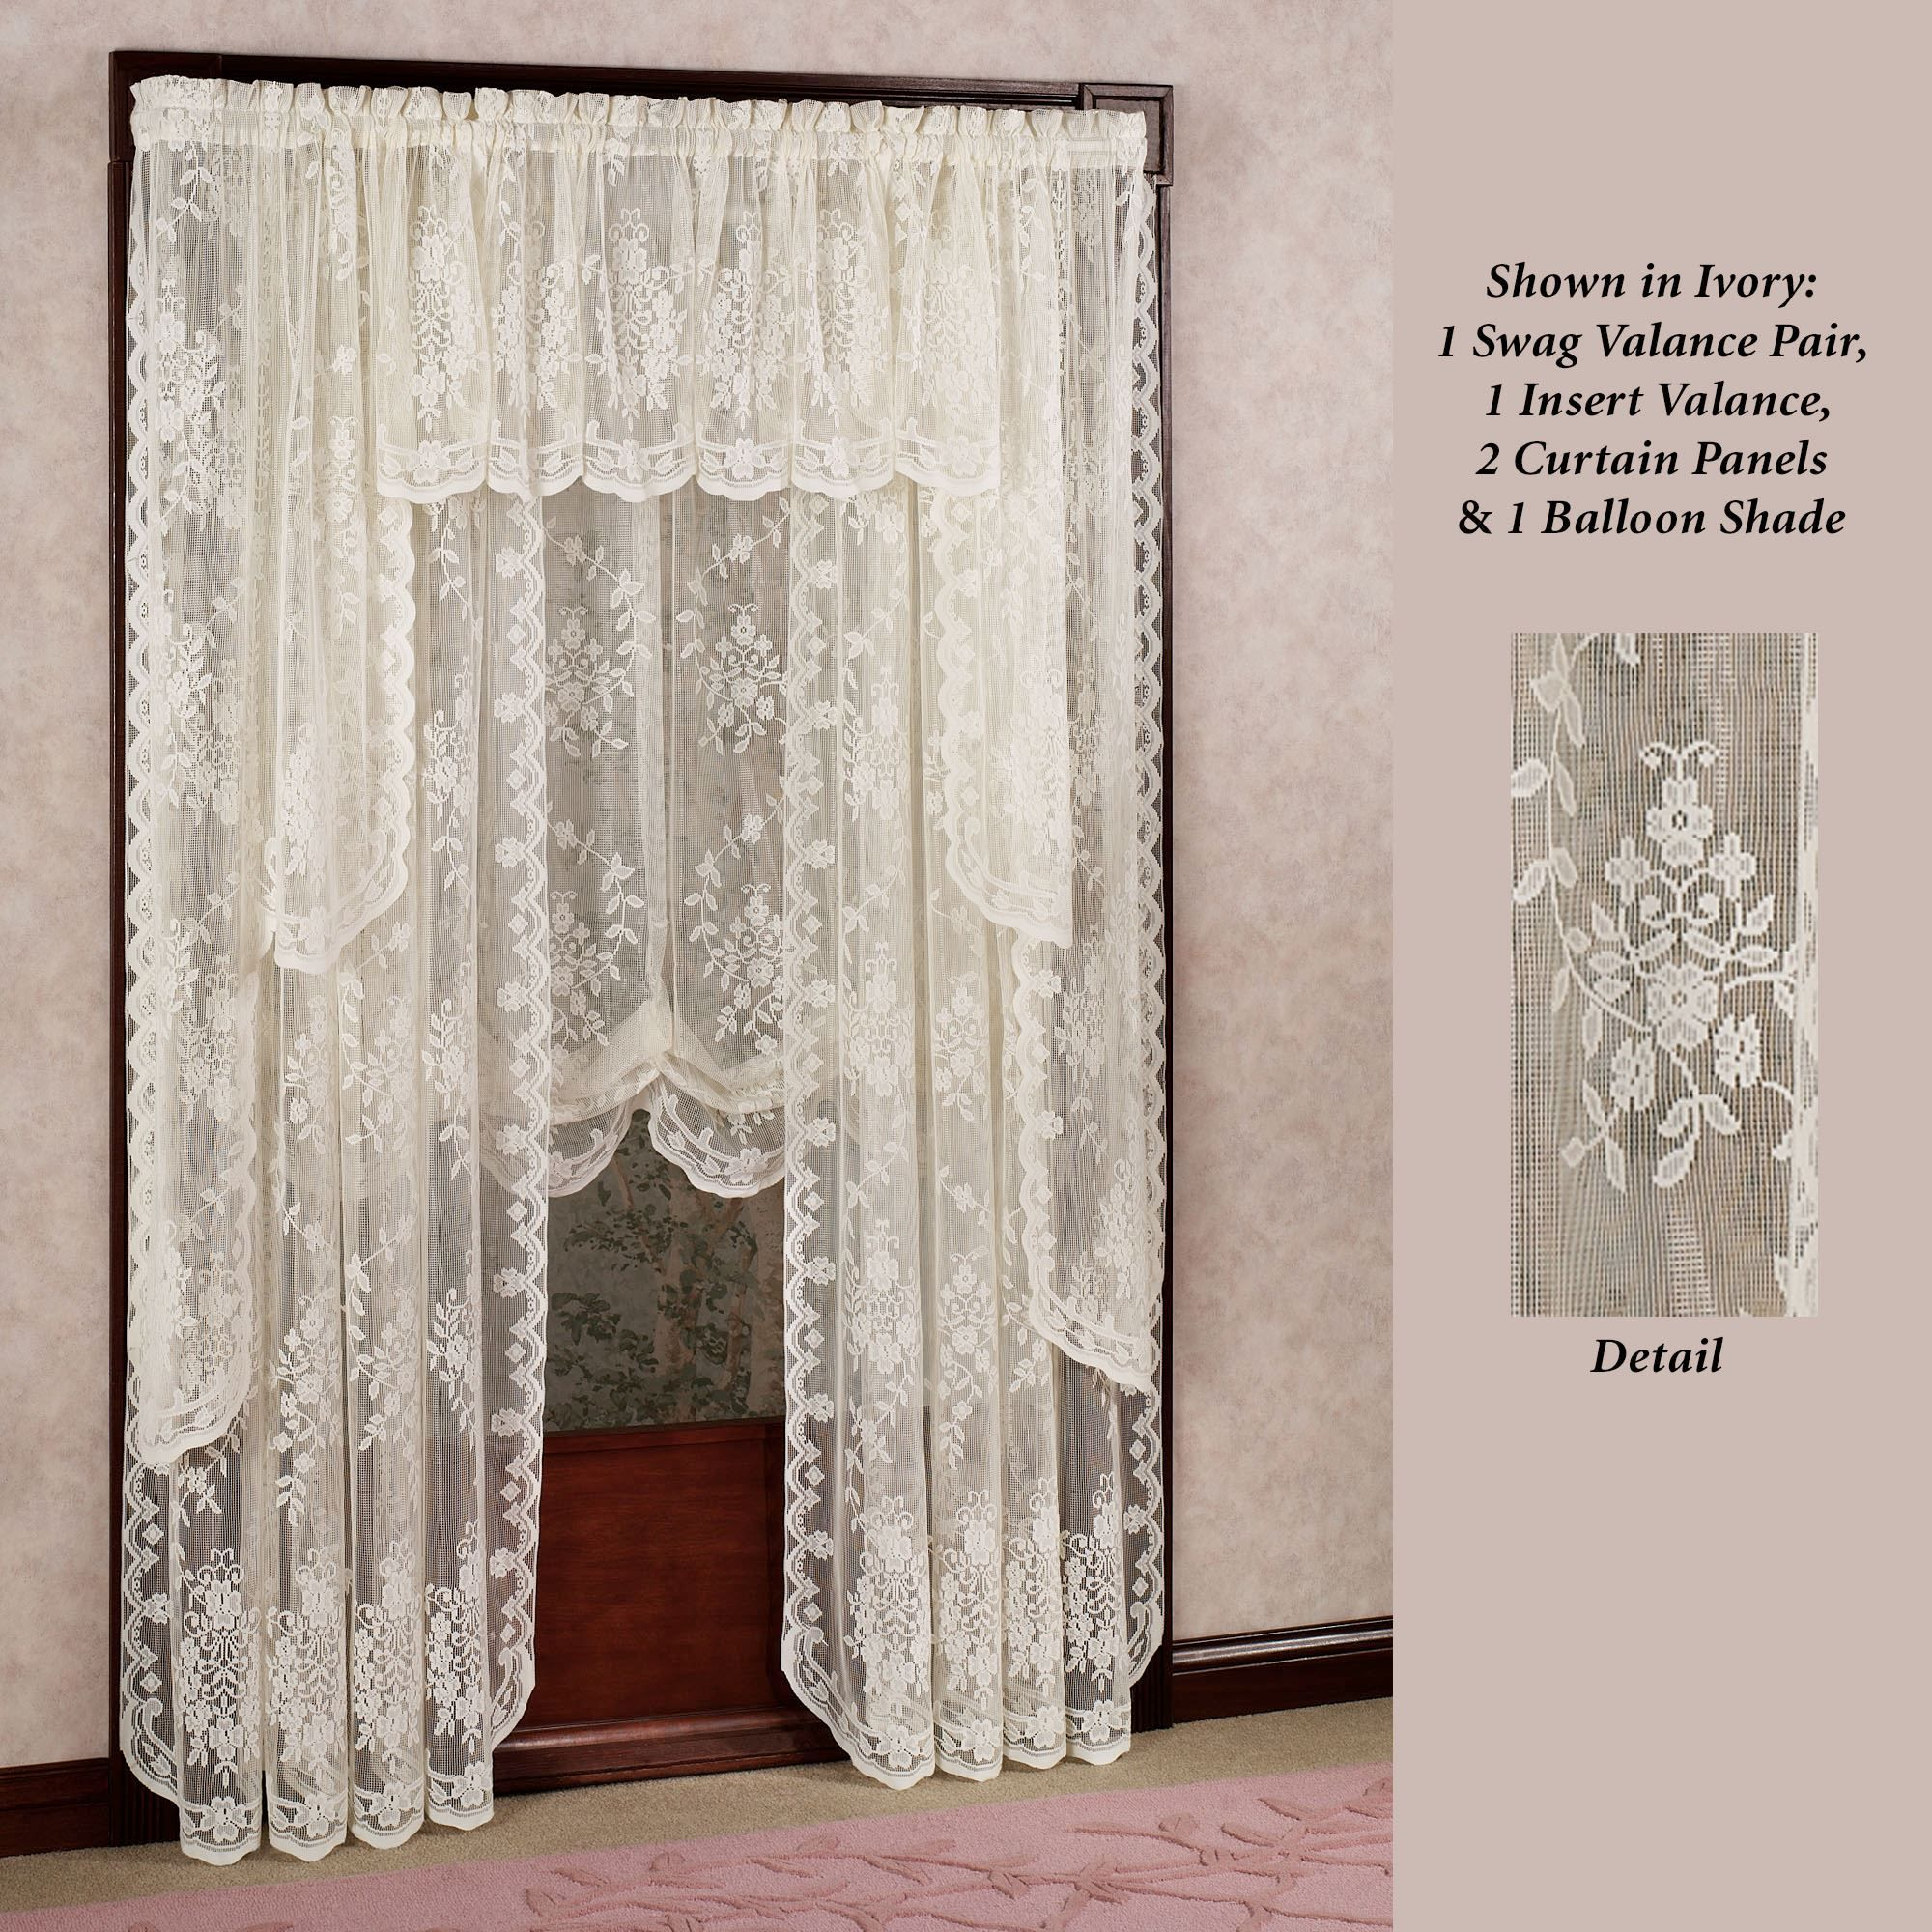 Fiona Scottish Lace Window Treatment In 2020 Lace Window Treatments Lace Window Lace Curtains